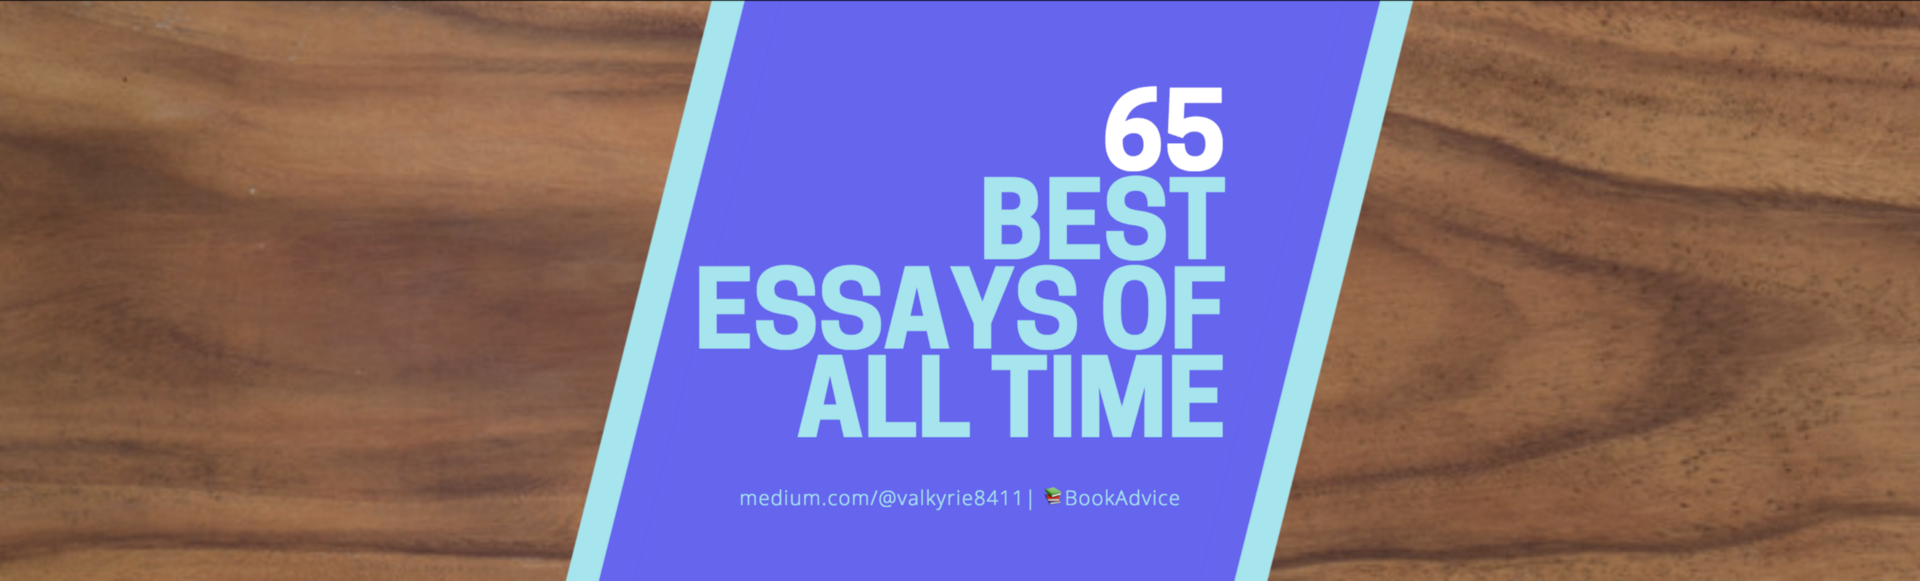 best essays of all time eth bookadvice medium